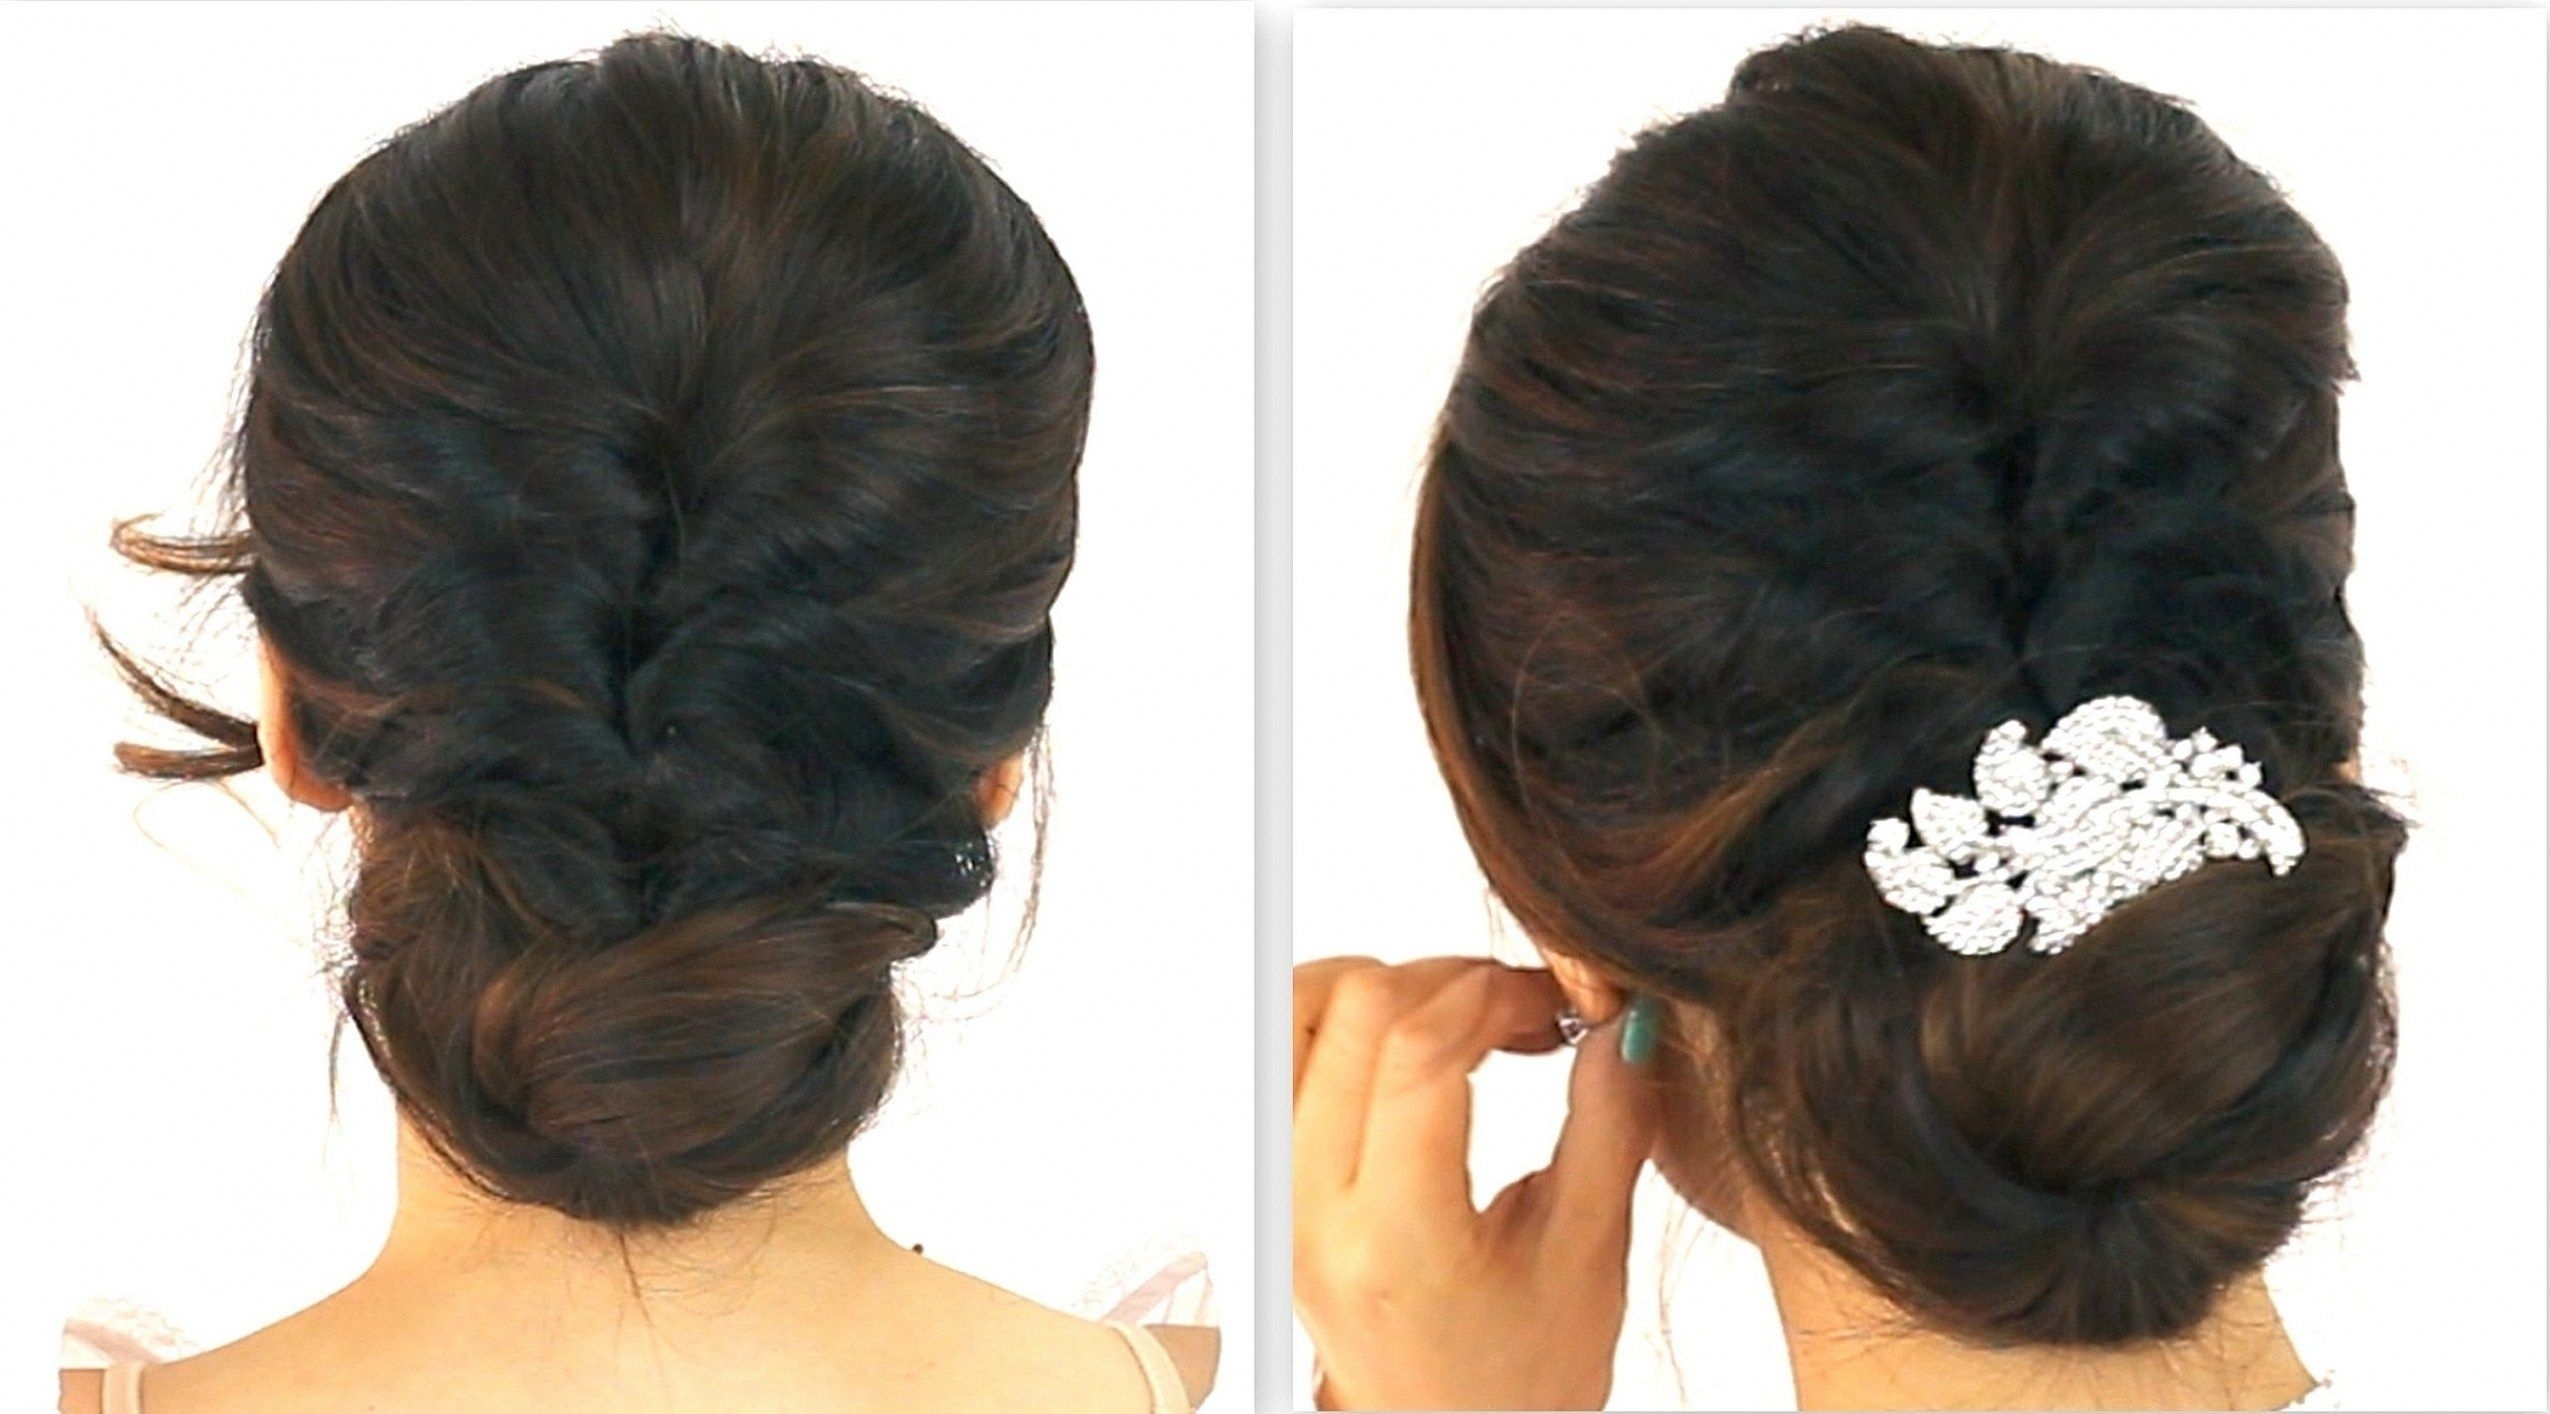 Indian Wedding Party Hairstyles For Short Hair | Hairstyles with Indian Hairstyles For Wedding Short Hair